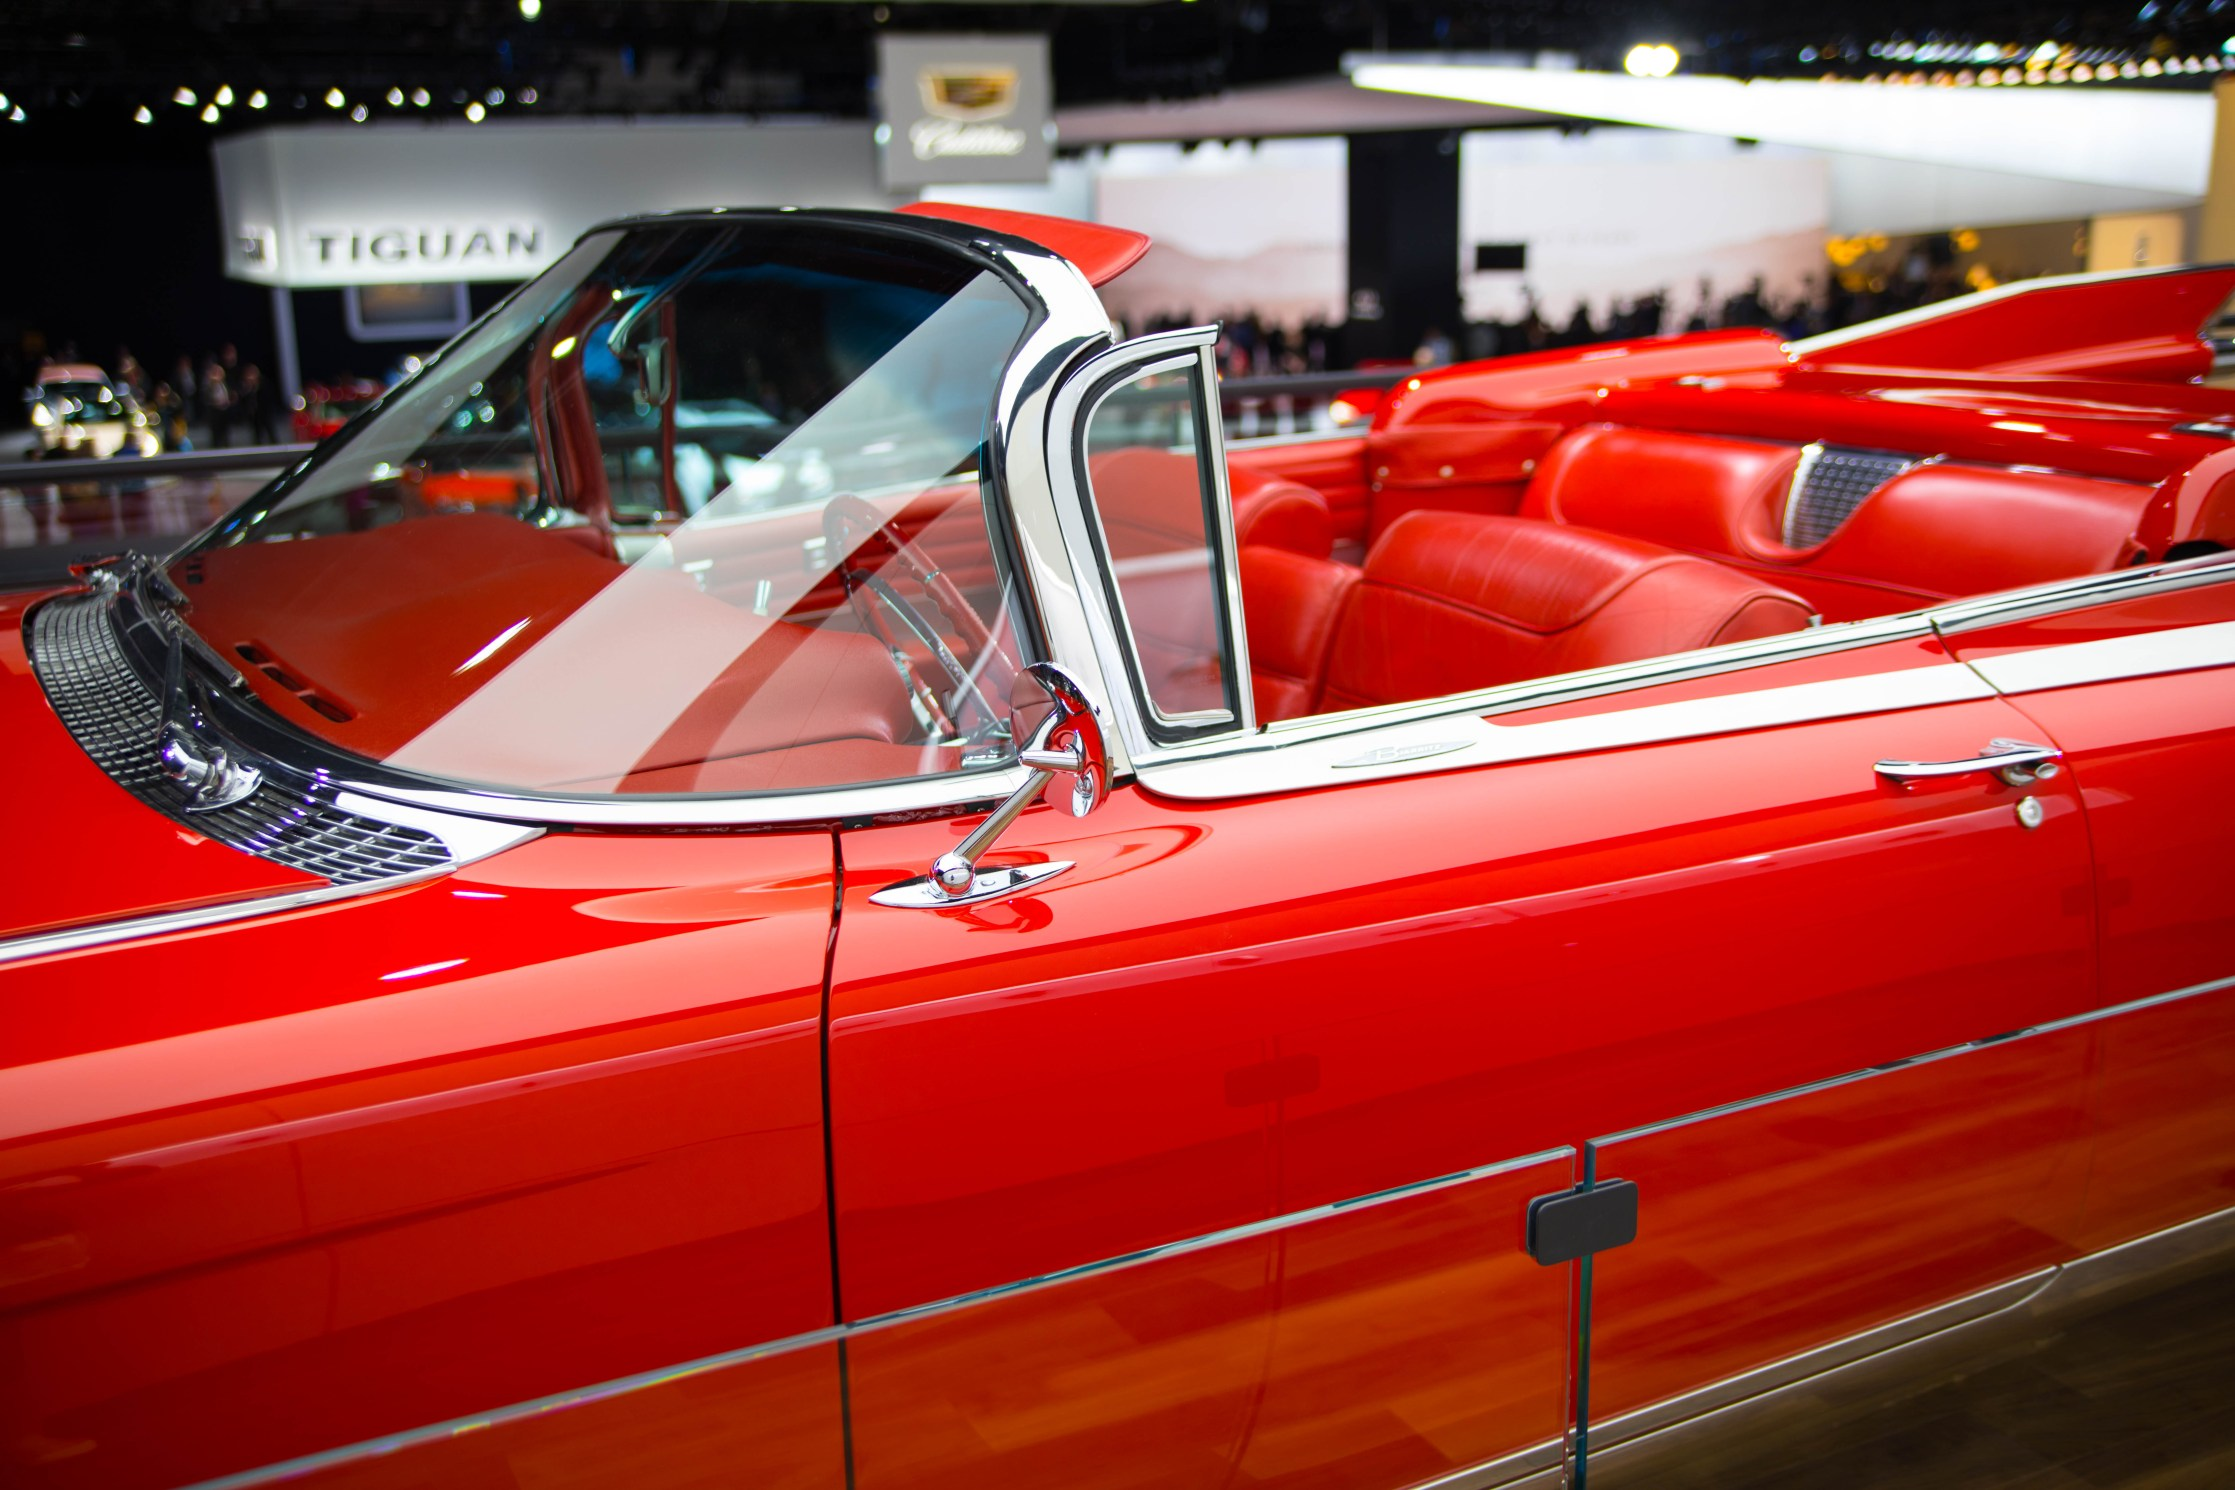 Candy Apple Red El Dorado Classic Cadillac Luxury Car at Detroit's North American International Auto Show Press Preview Day NAIAS 2019 by Annie Fairfax